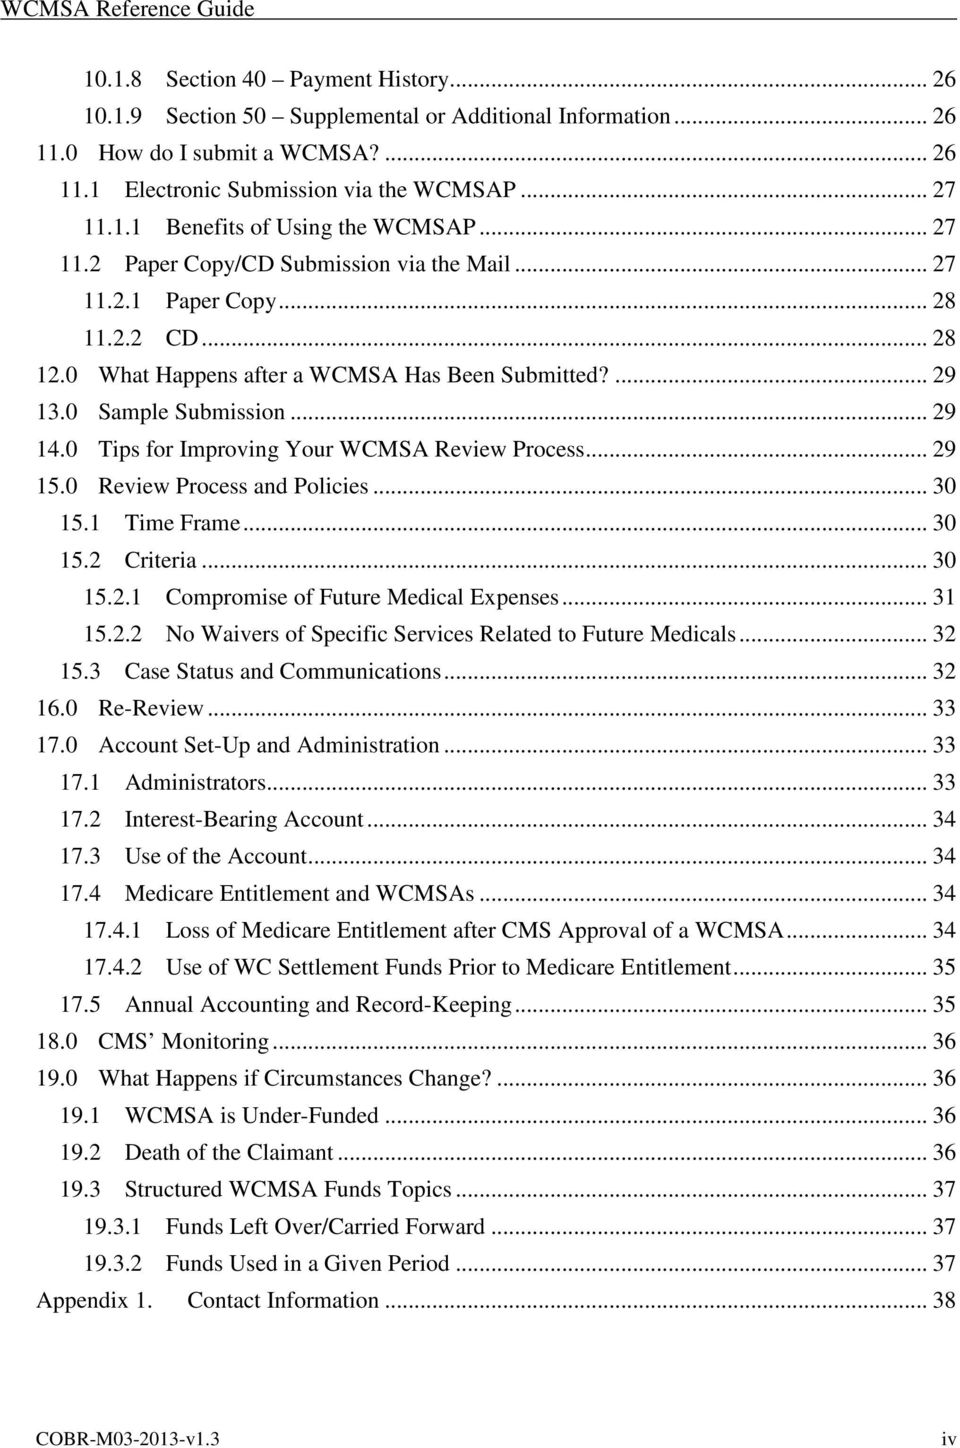 0 Tips for Improving Your WCMSA Review Process... 29 15.0 Review Process and Policies... 30 15.1 Time Frame... 30 15.2 Criteria... 30 15.2.1 Compromise of Future Medical Expenses... 31 15.2.2 No Waivers of Specific Services Related to Future Medicals.